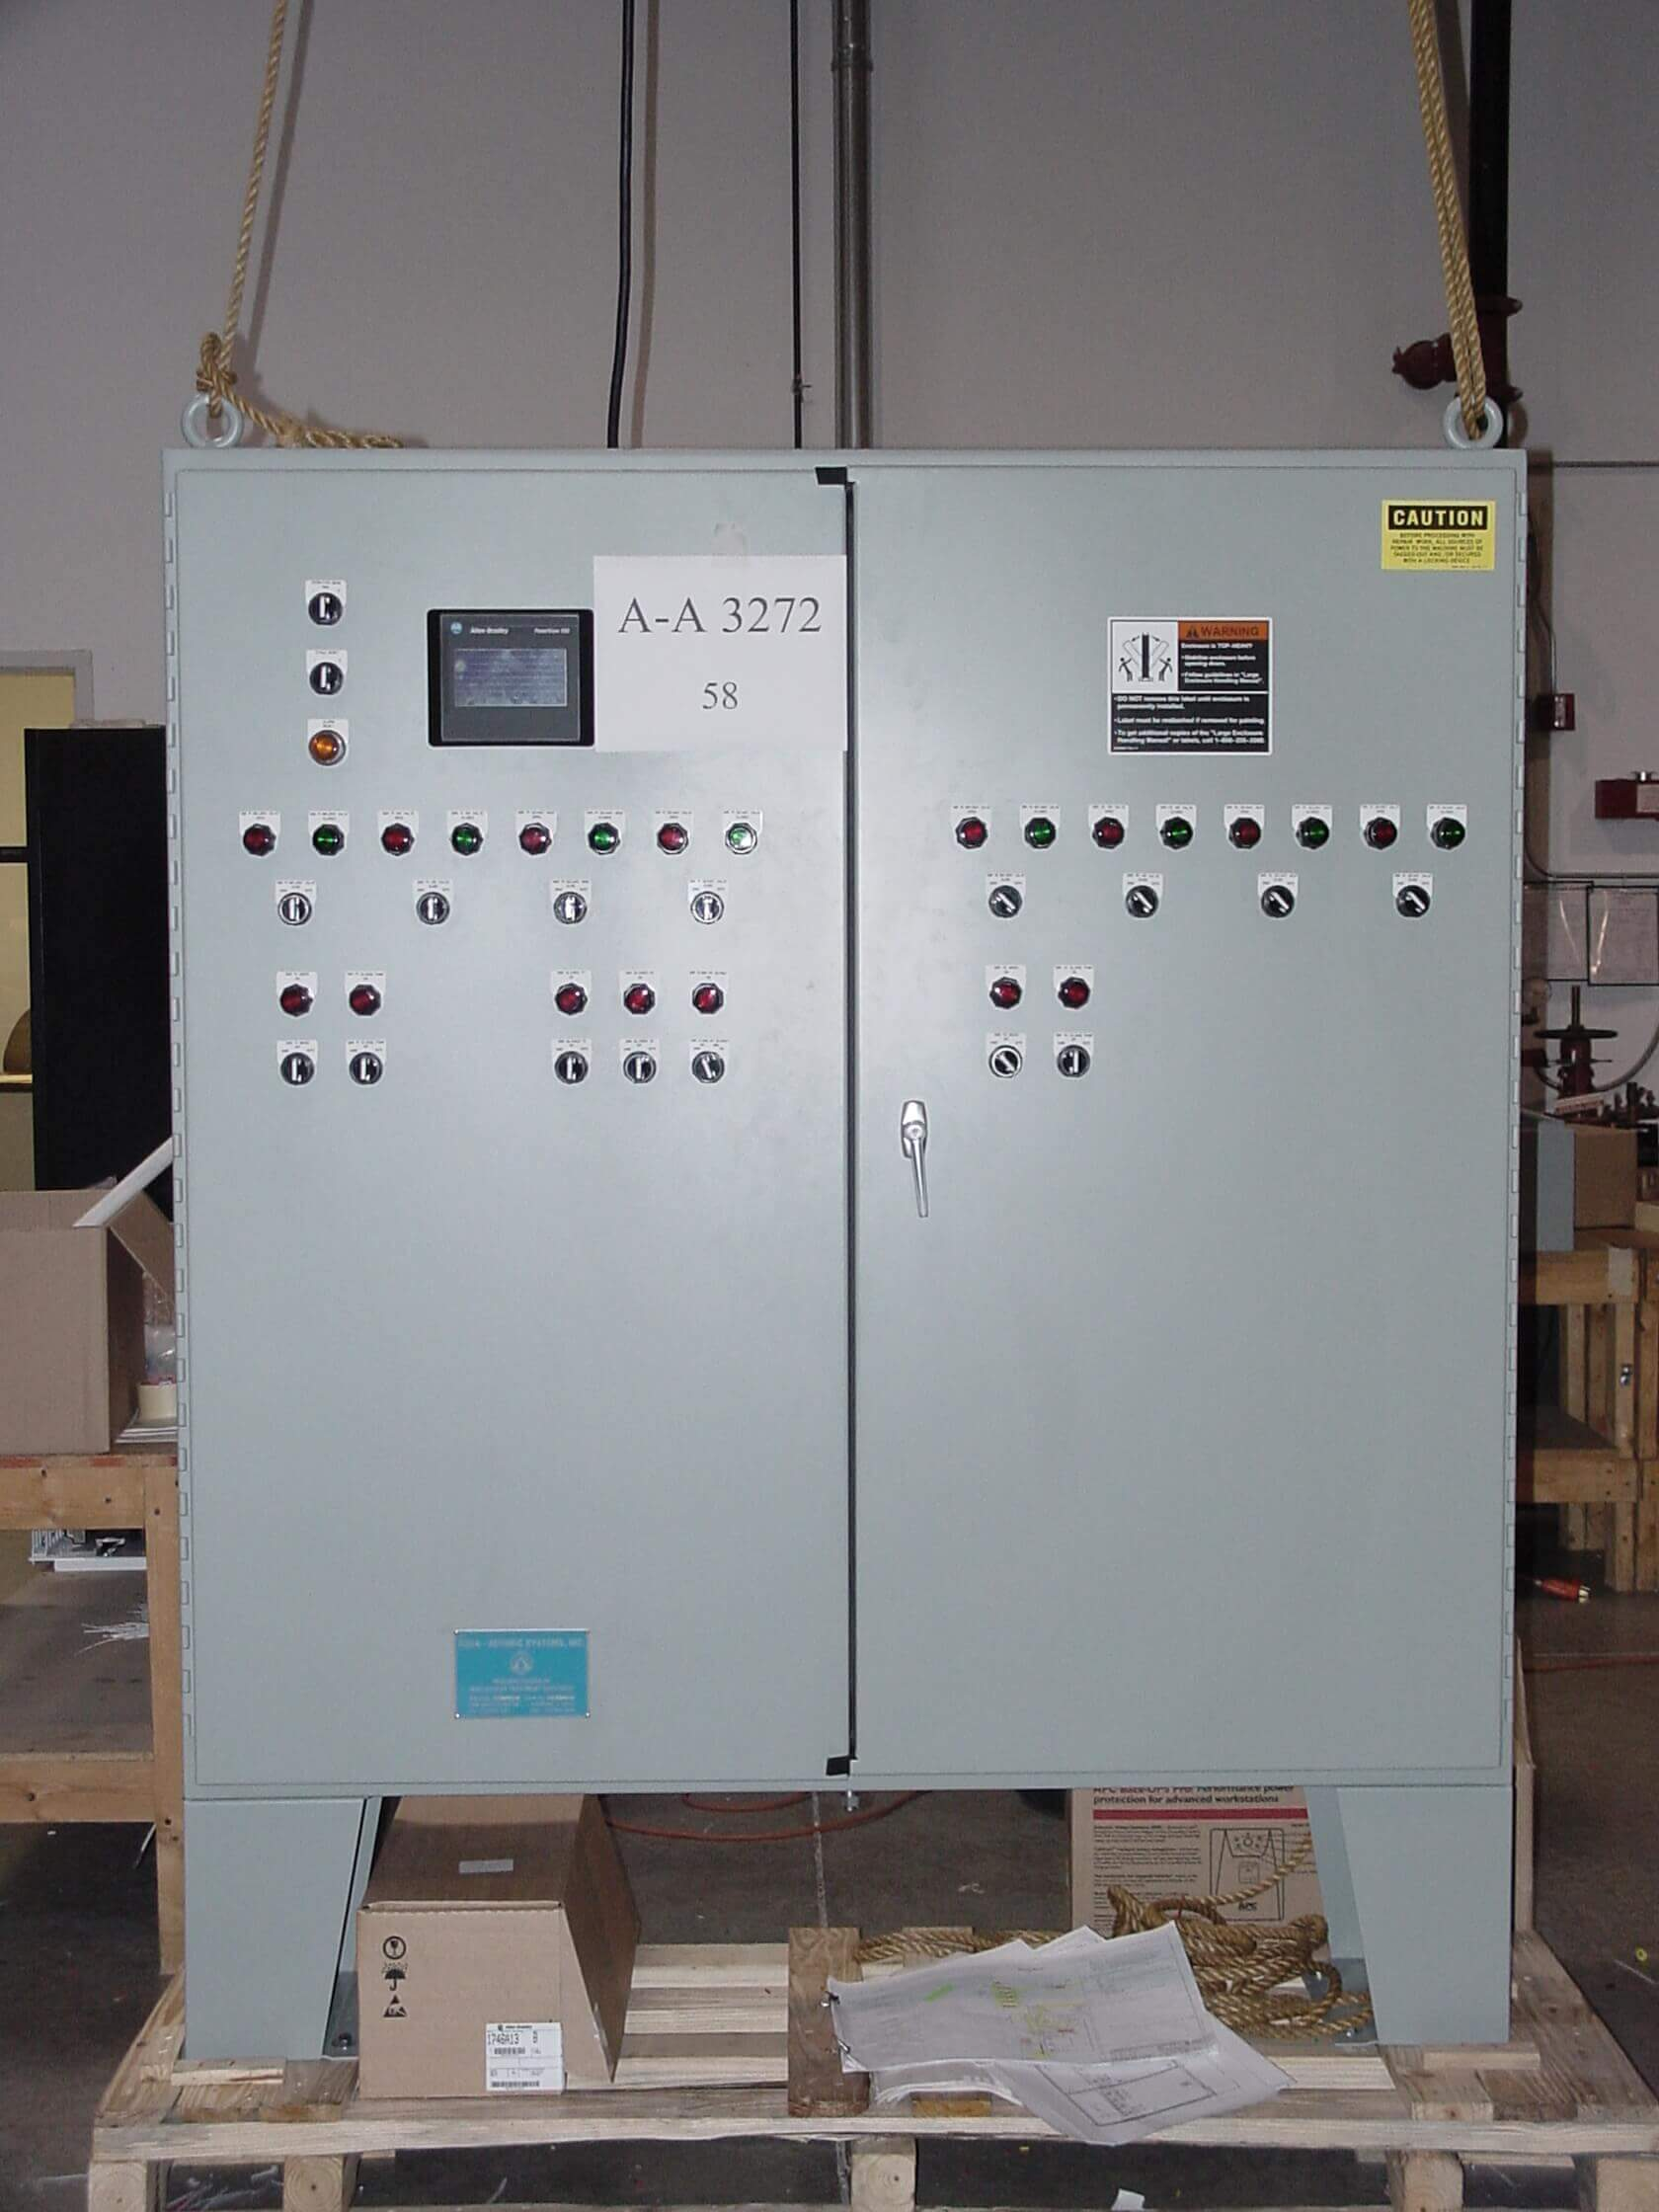 How Can Manual Override Of An Automatic Control System Be Implemented